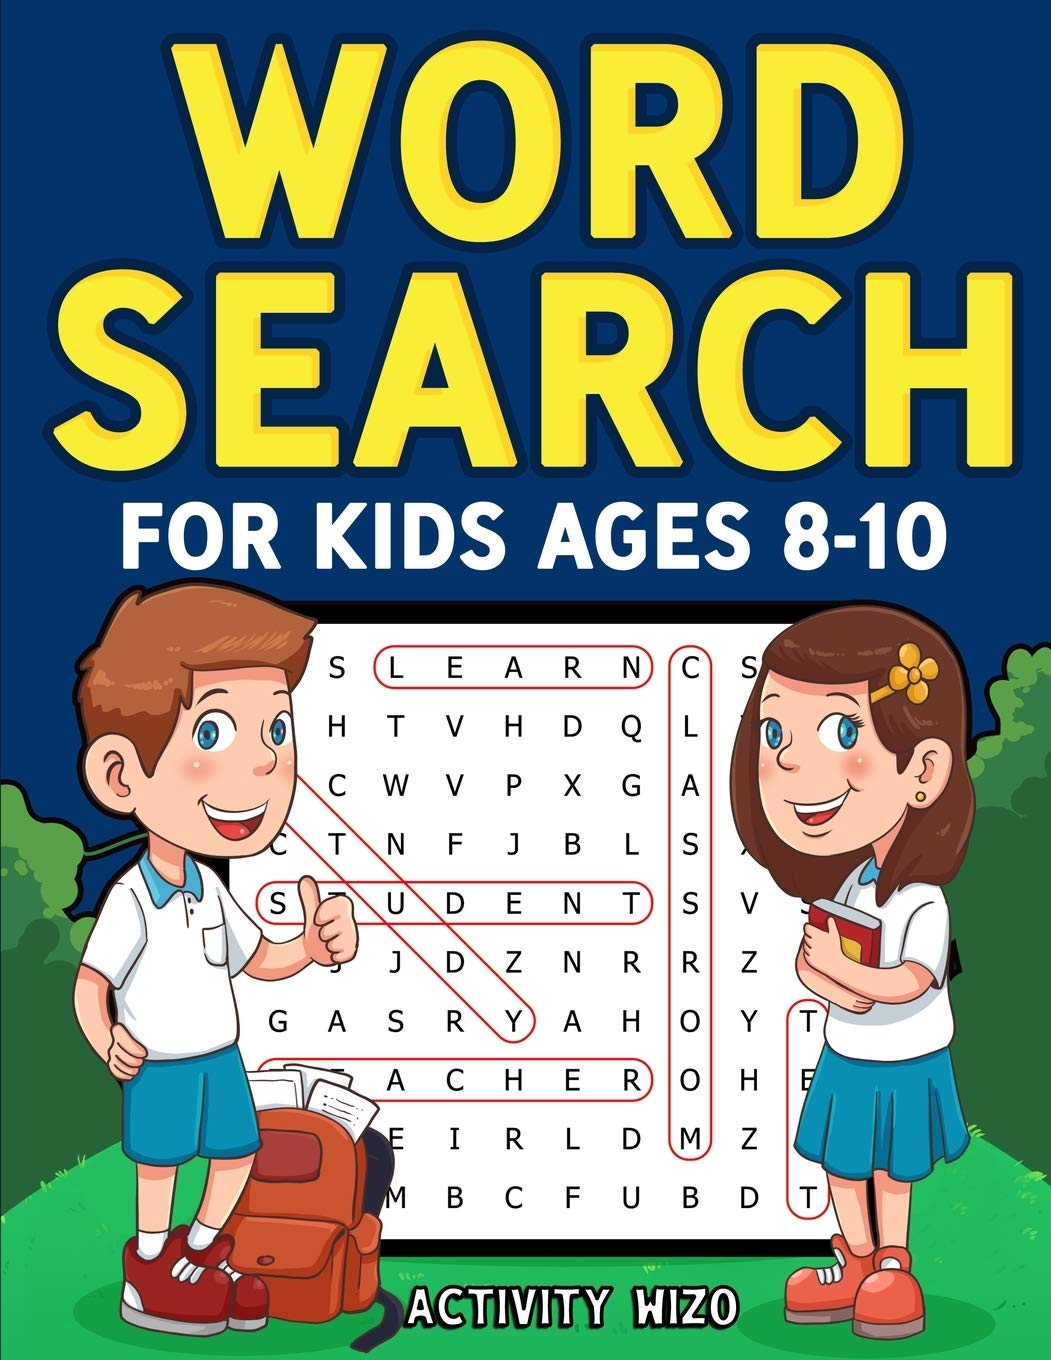 Image OfWord Search For Kids Ages 8-10: Practice Spelling, Learn Vocabulary, And Improve Reading Skills With 100 Puzzles